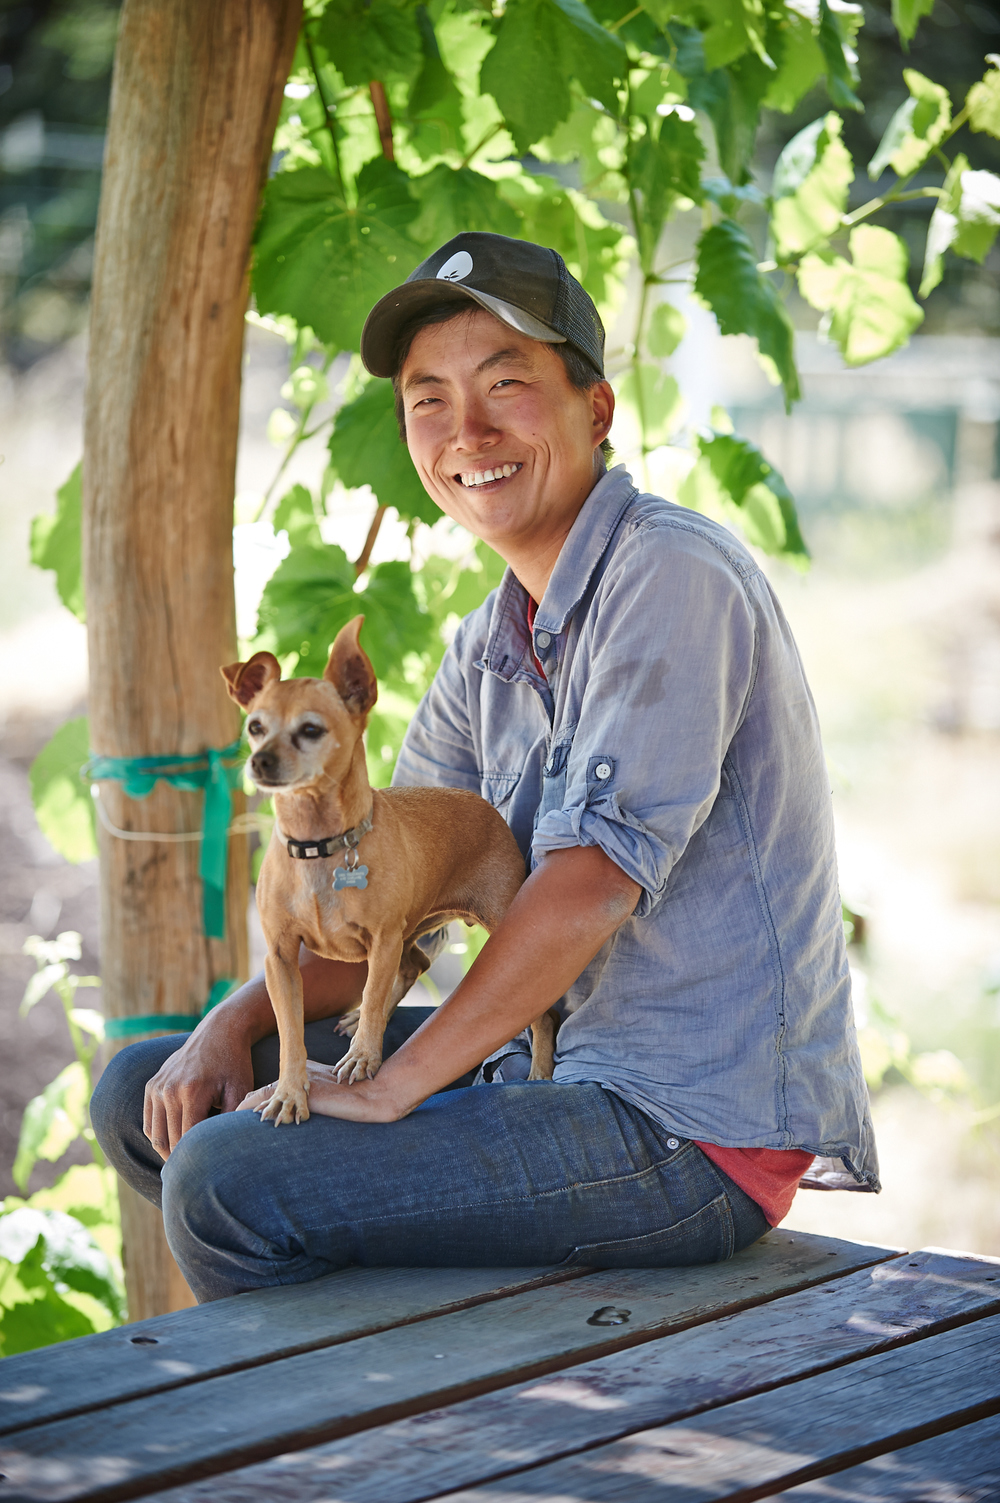 Kristyn Leach and her trustee pup farm a small parcel in the east bay. She supplies restaurants and other local concerns. More about her here.